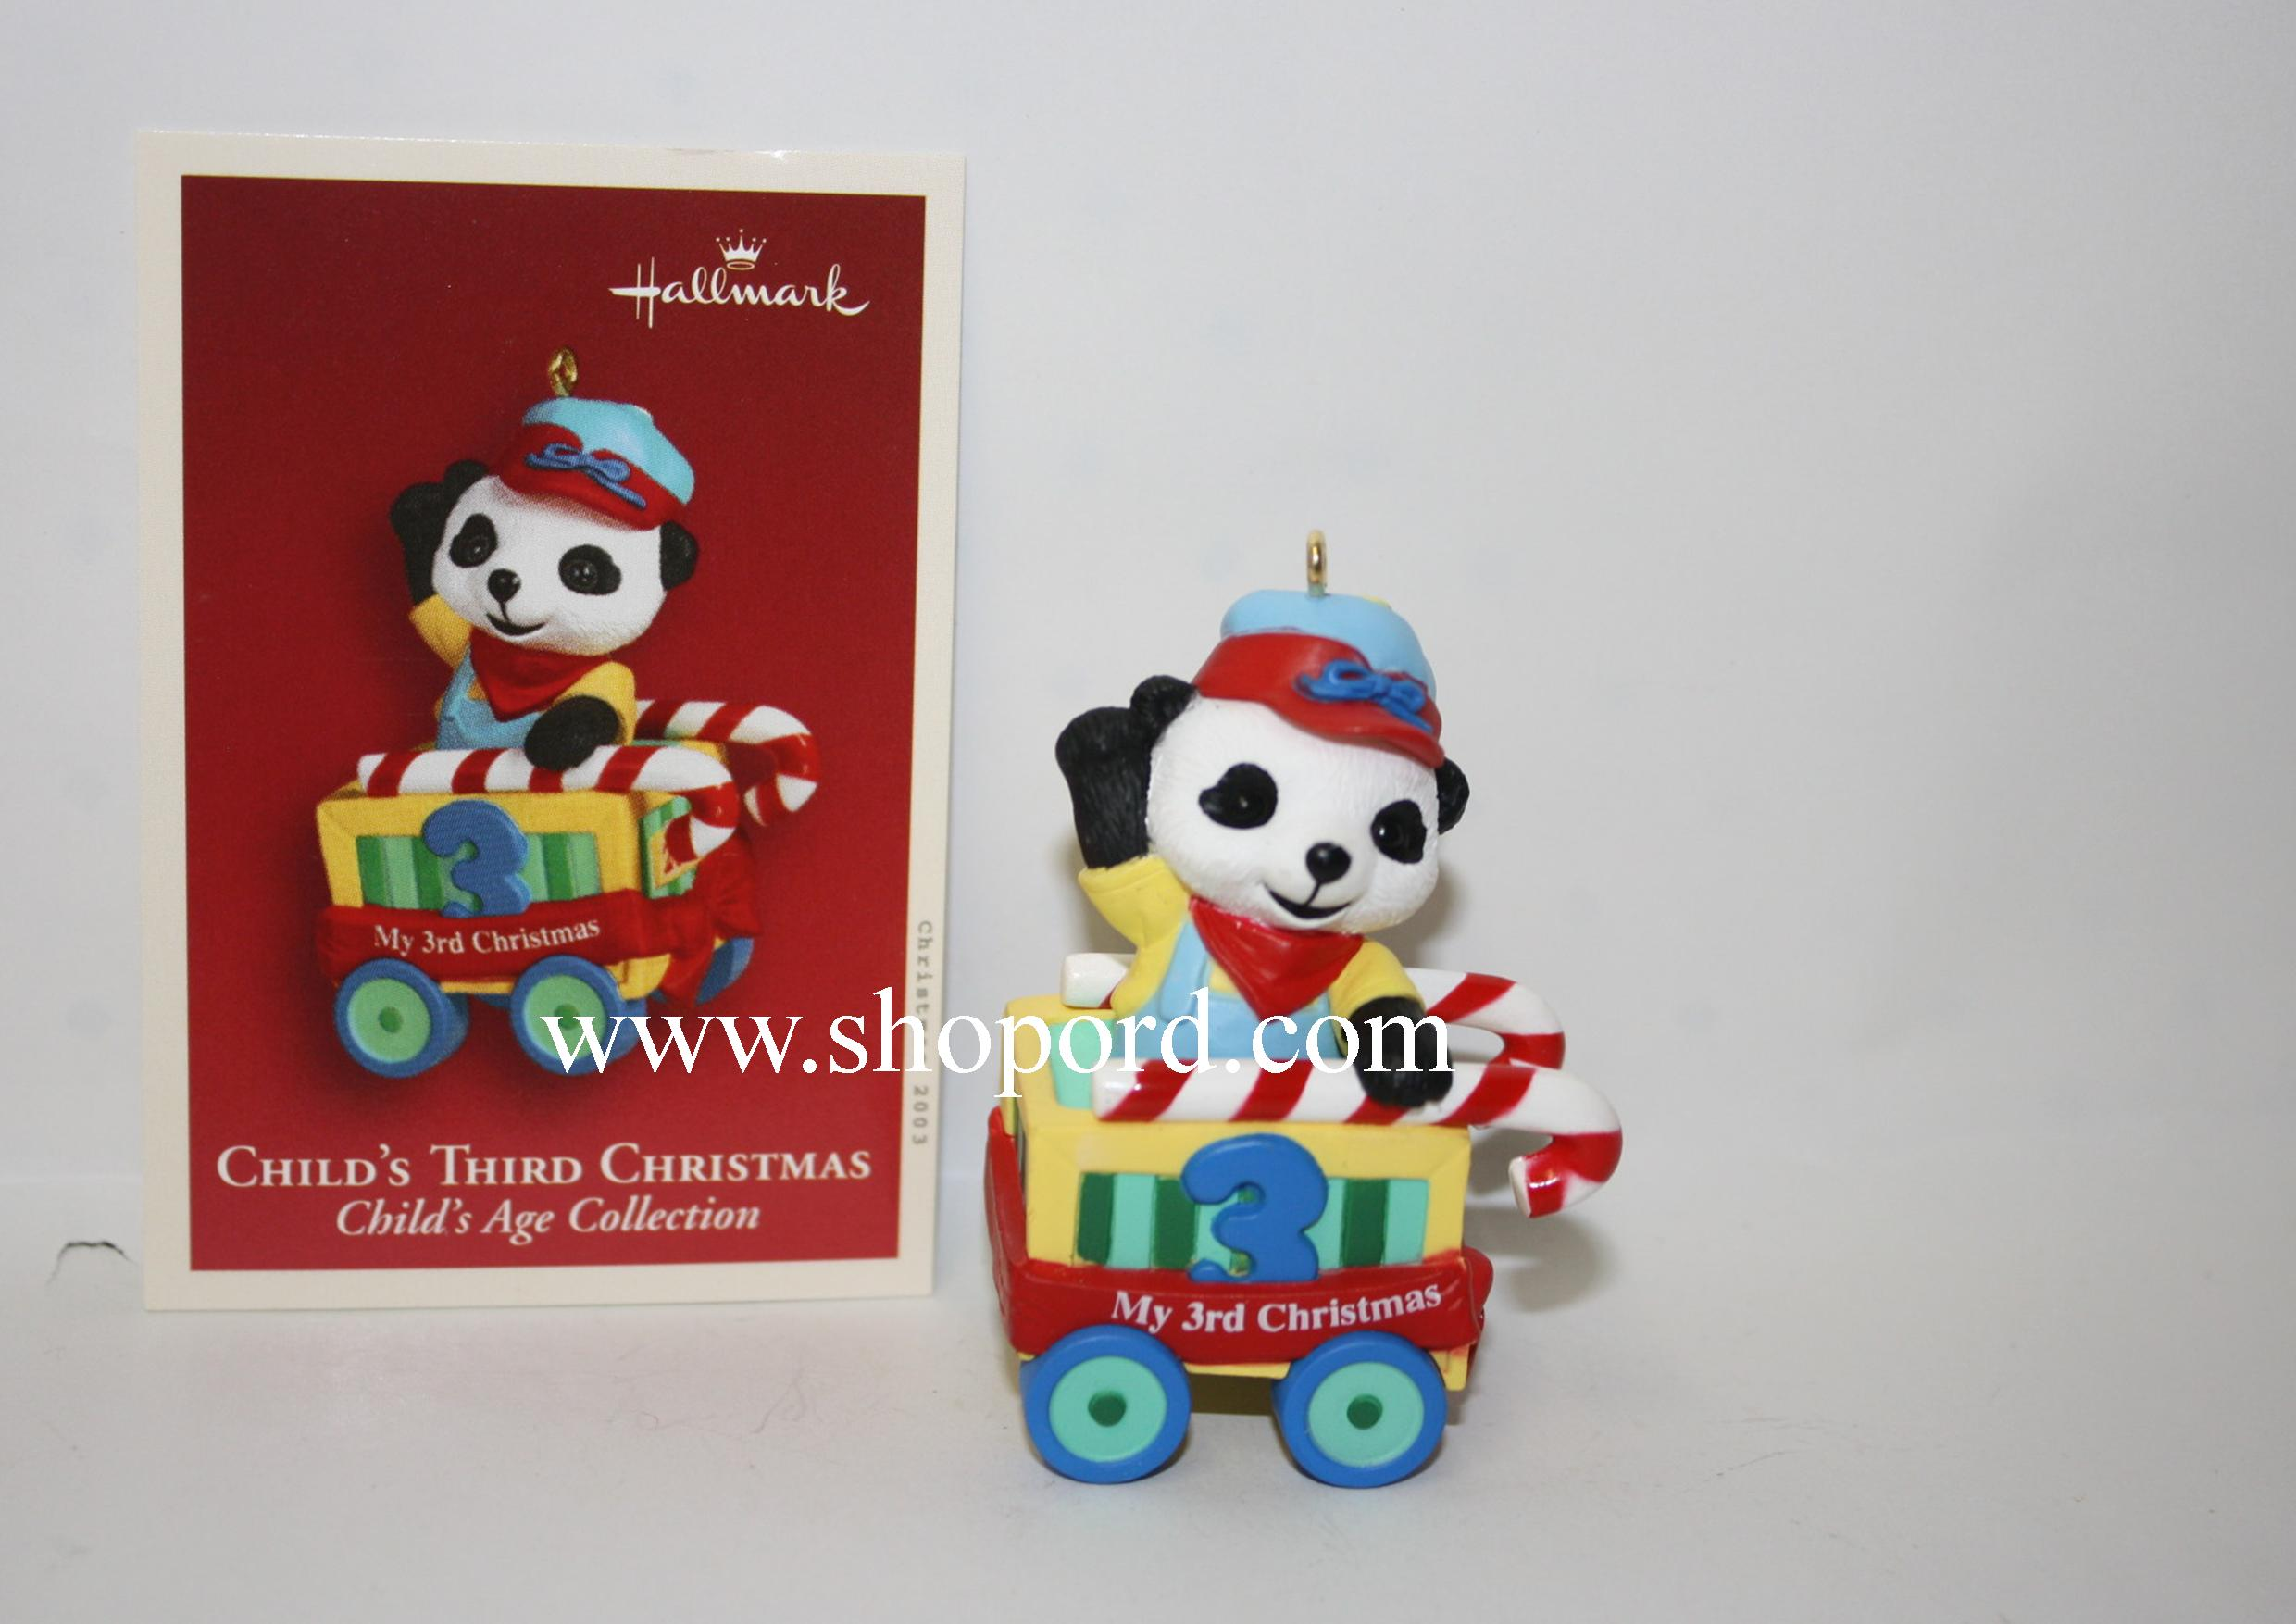 Hallmark 2003 Childs Third Christmas Ornament Childs Age Collection Train QXG8707